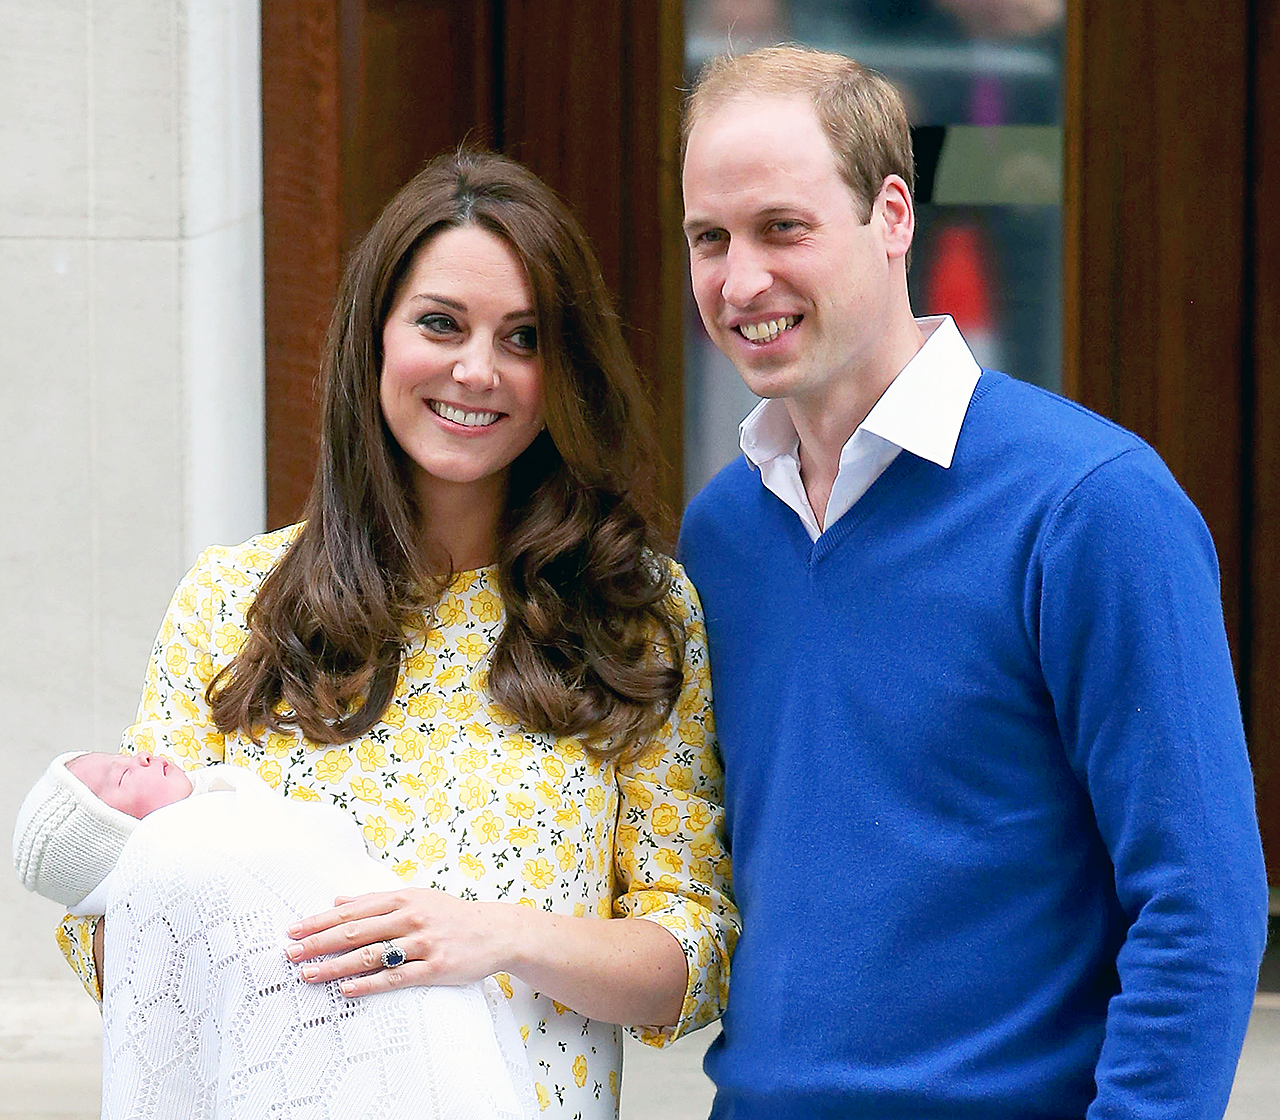 Kate Middleton and Prince William welcomed Prince George's little sister, Charlotte Elizabeth Diana, on Saturday, May 2, 2015 at St. Mary's Hospital in London. The baby girl, now fourth in line to the throne, arrived at 8:34 am local time and weighed 8 lbs.